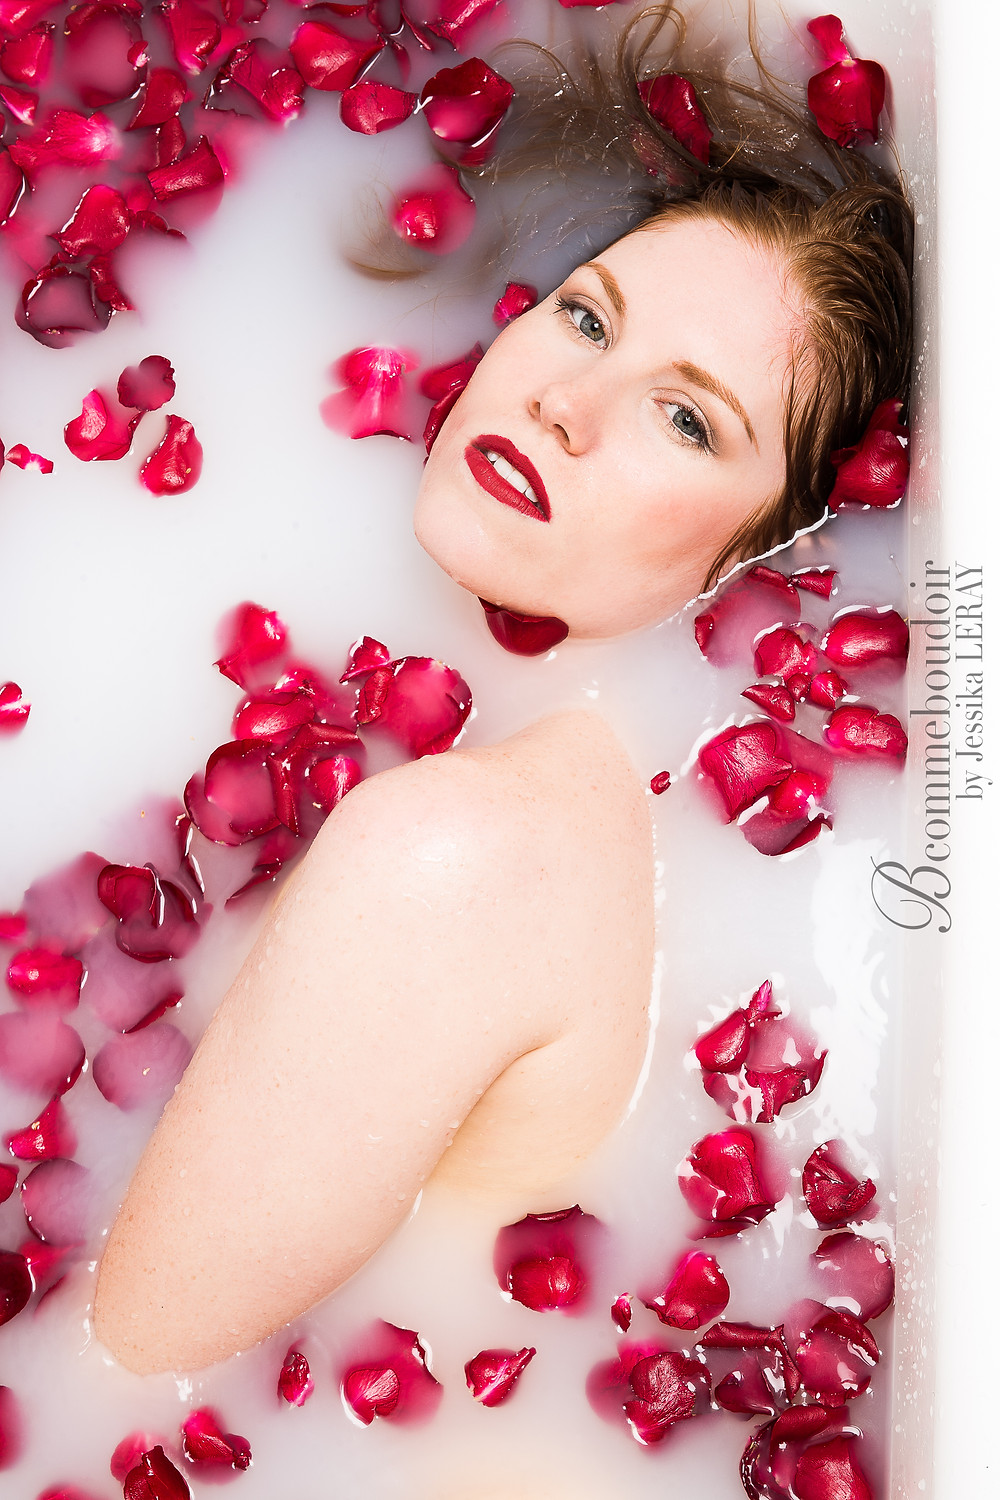 The Milk and bath shooting in Paris, France